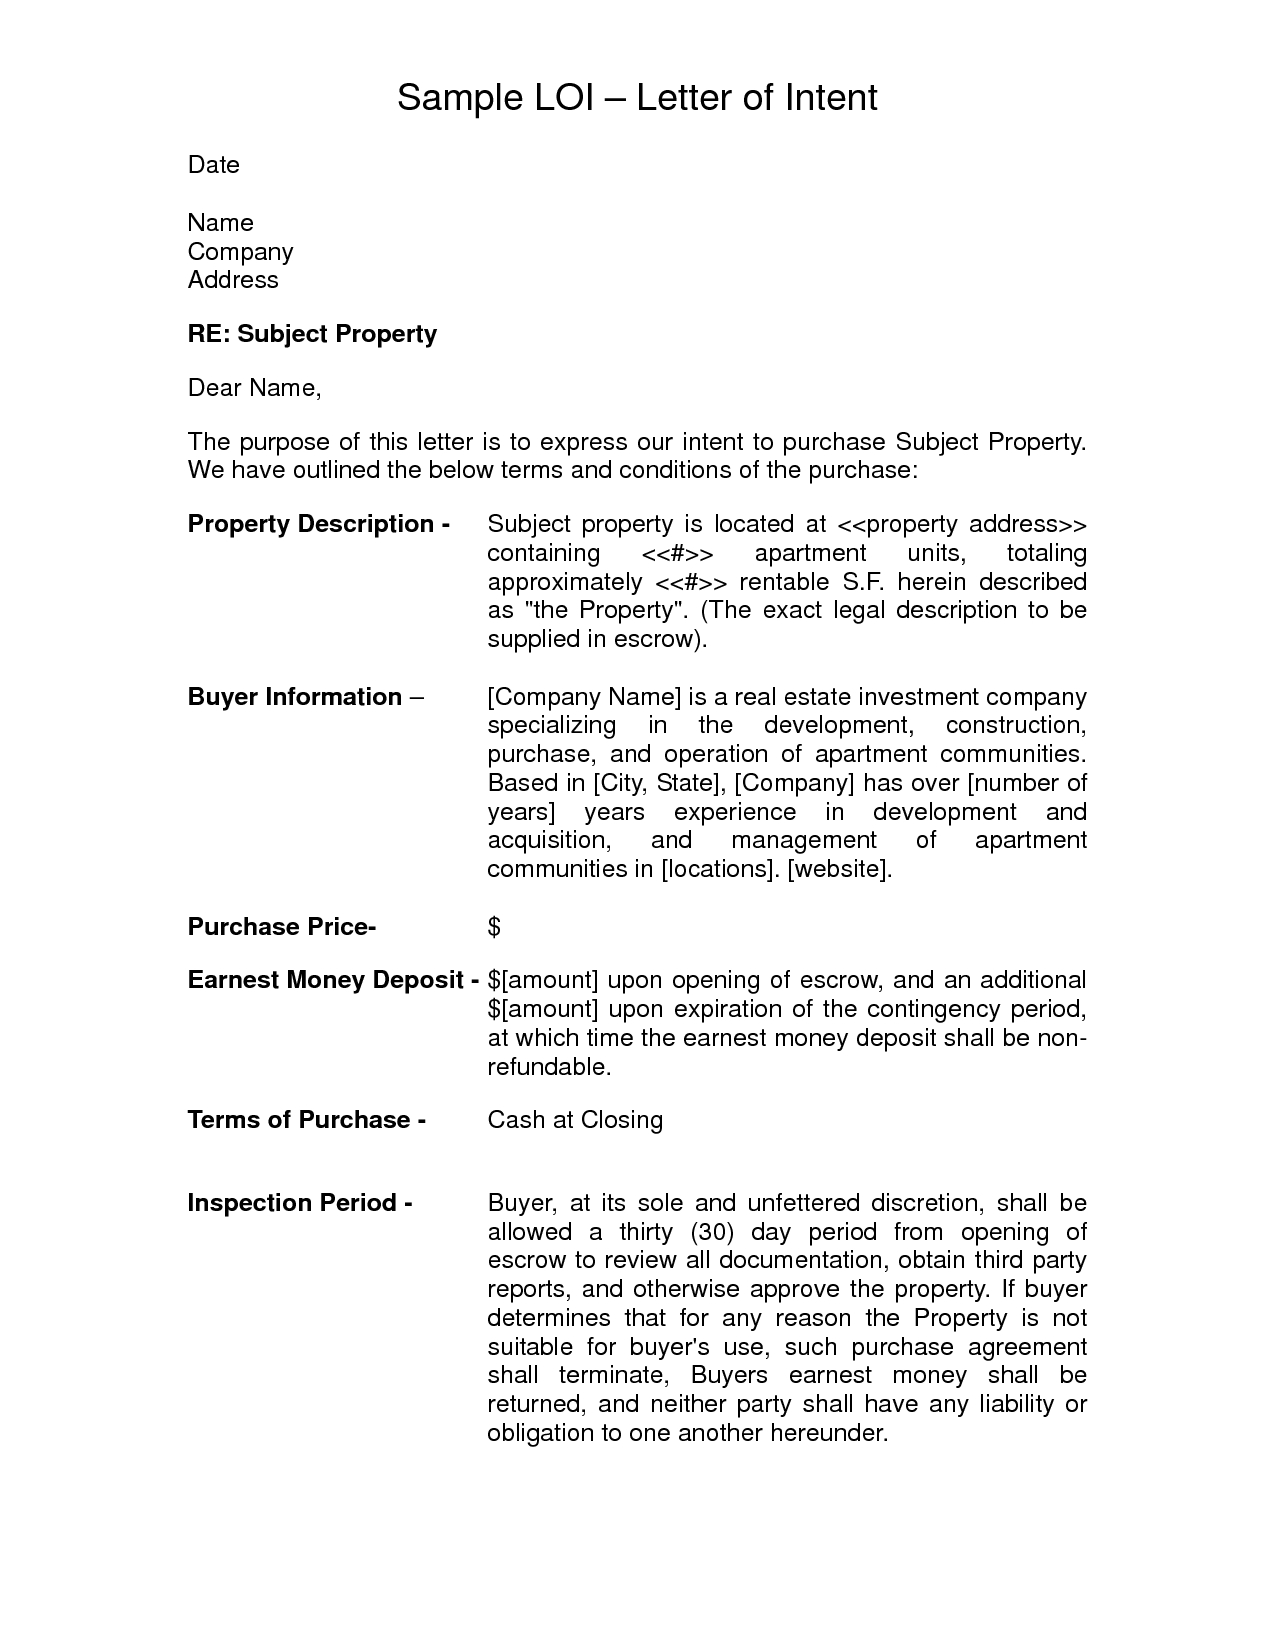 Letter of intent to sell property template examples letter templates letter of intent to sell property template letter intent to sell sample property template examples expocarfo Image collections